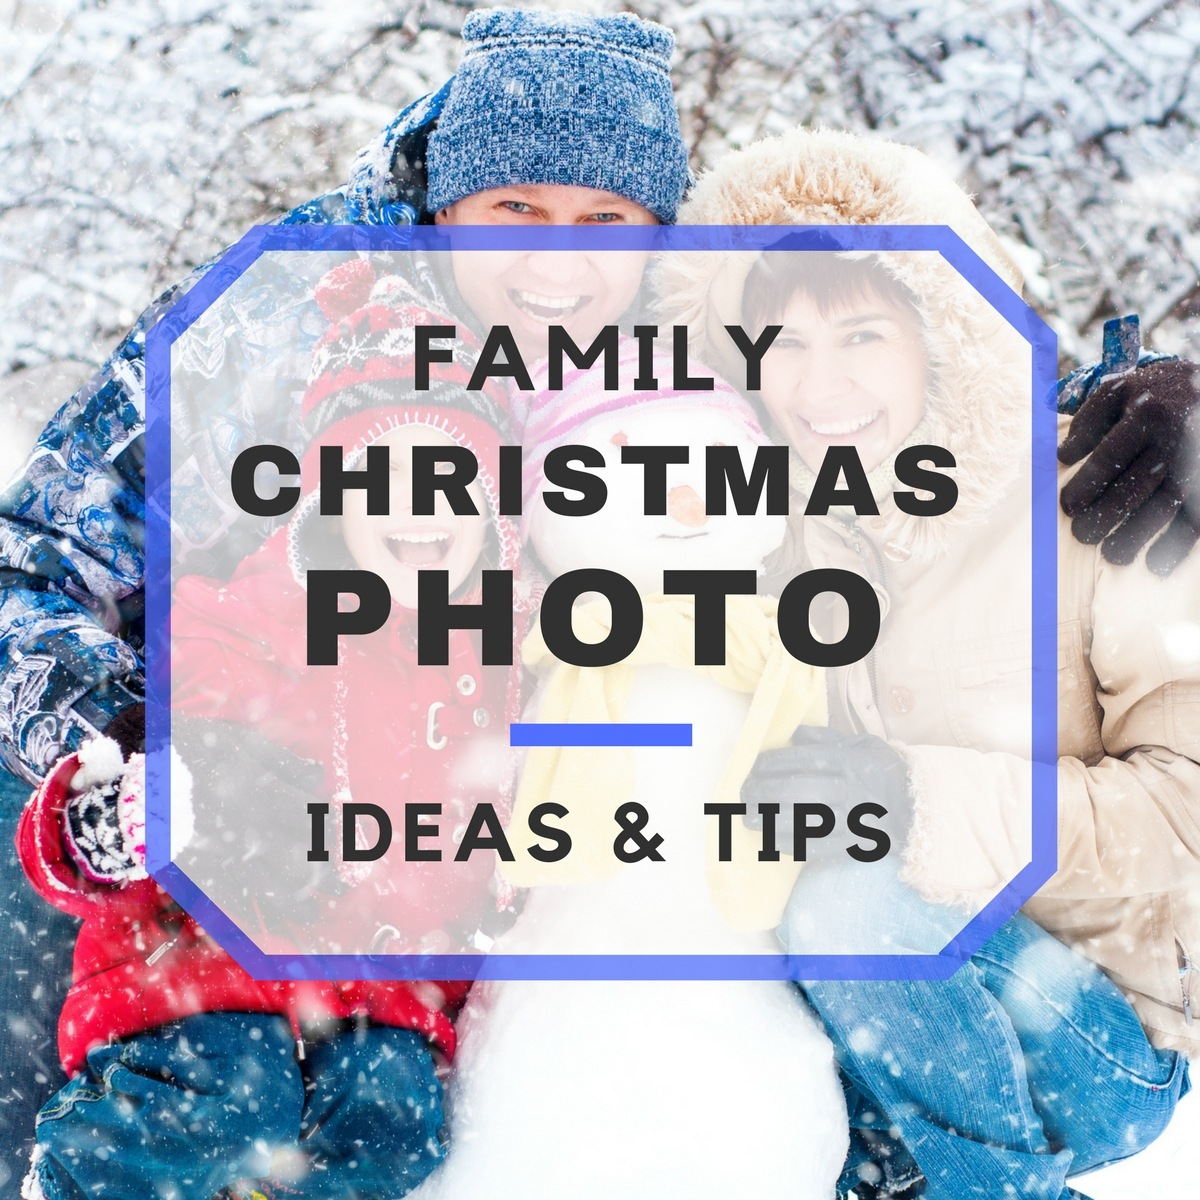 Family Christmas Photo Ideas and Tips